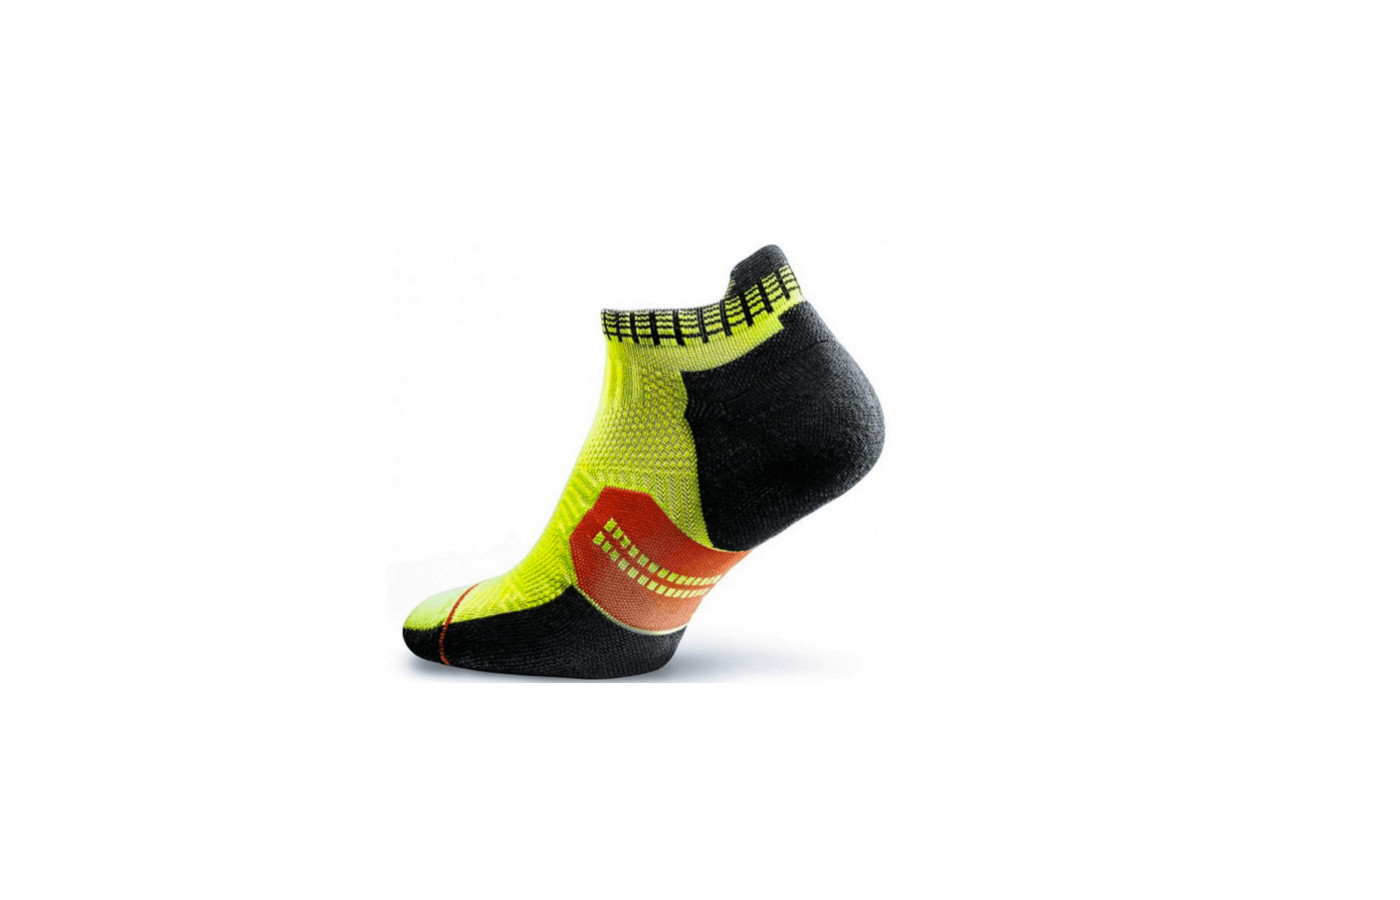 The Accelerate running socks offer compression in the midfoot and ankle areas.